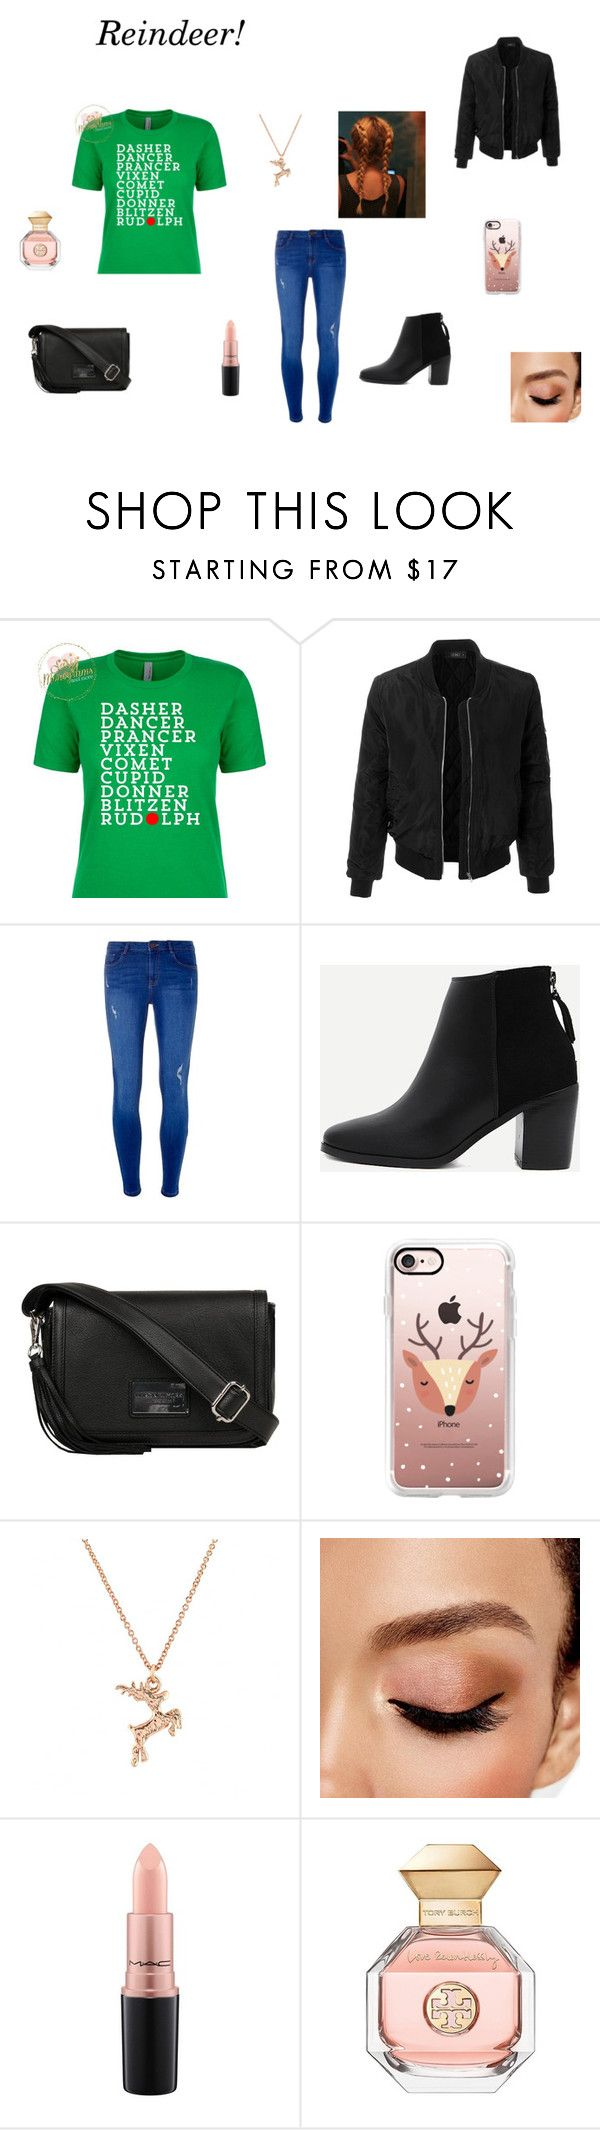 """""""Reindeer!"""" by lizzie-raye ❤ liked on Polyvore featuring LE3NO, Dorothy Perkins, WithChic, Andrew Marc, Casetify, Johnny Loves Rosie, Avon, MAC Cosmetics and Tory Burch"""